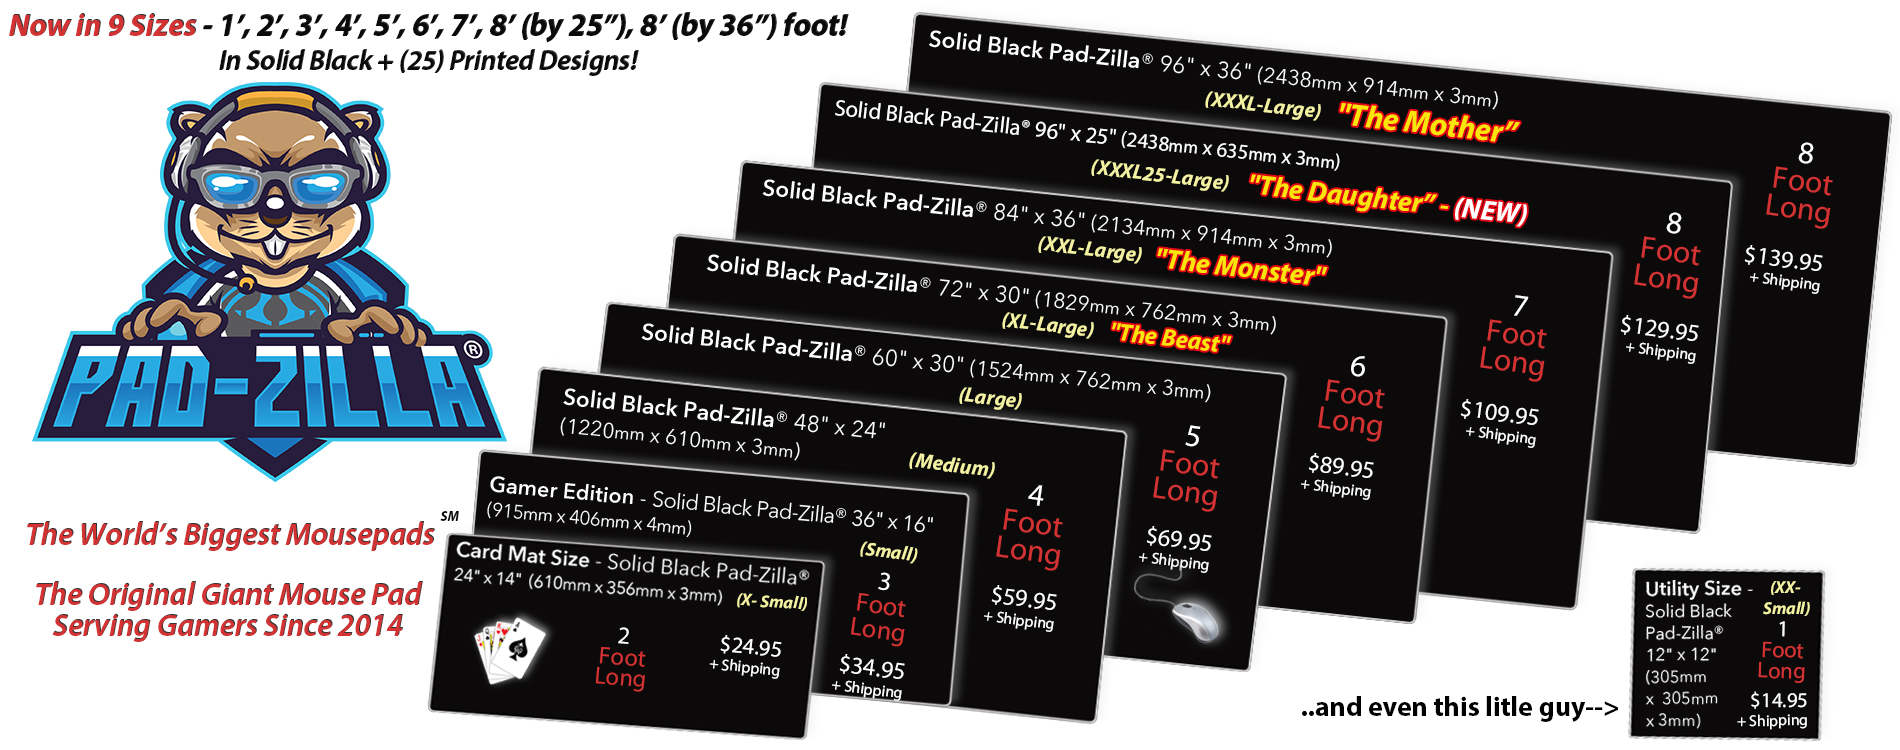 Solid Black - Brand-Free - Giant Pad-Zilla® Giant Mouse Pads & Desk Mats - Order Now!